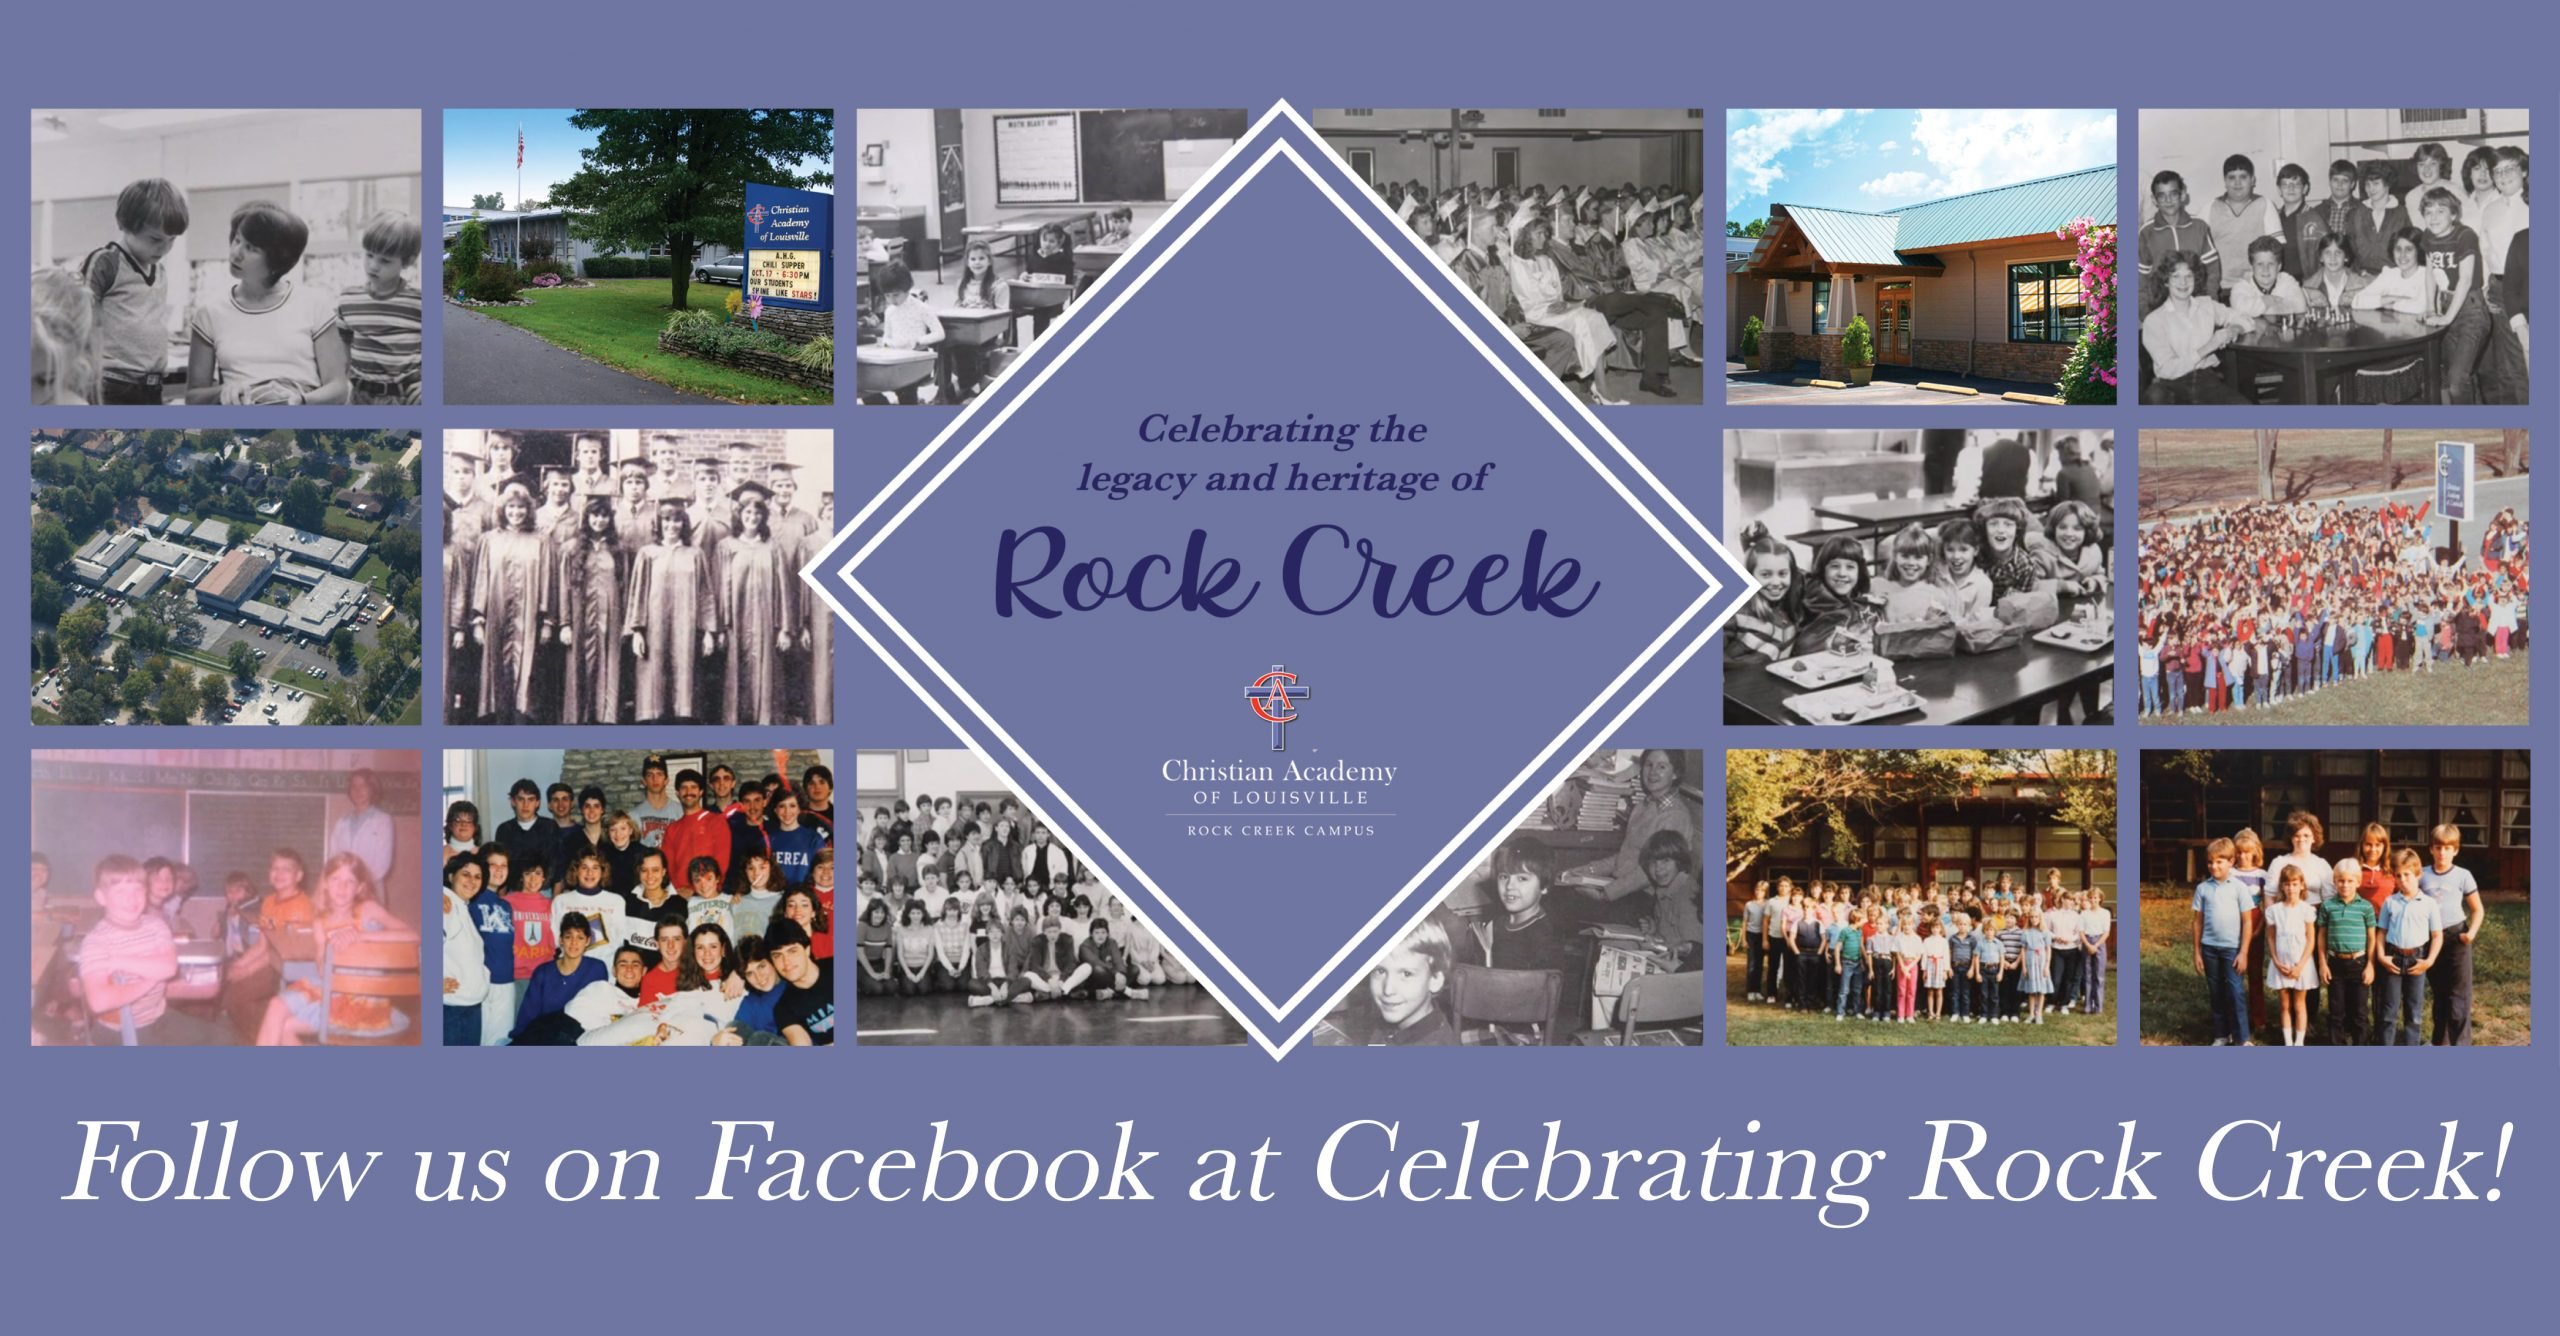 Christian Academy School System | Christian Academy of Louisville | Rock Creek Campus | Celebrating Rock Creek